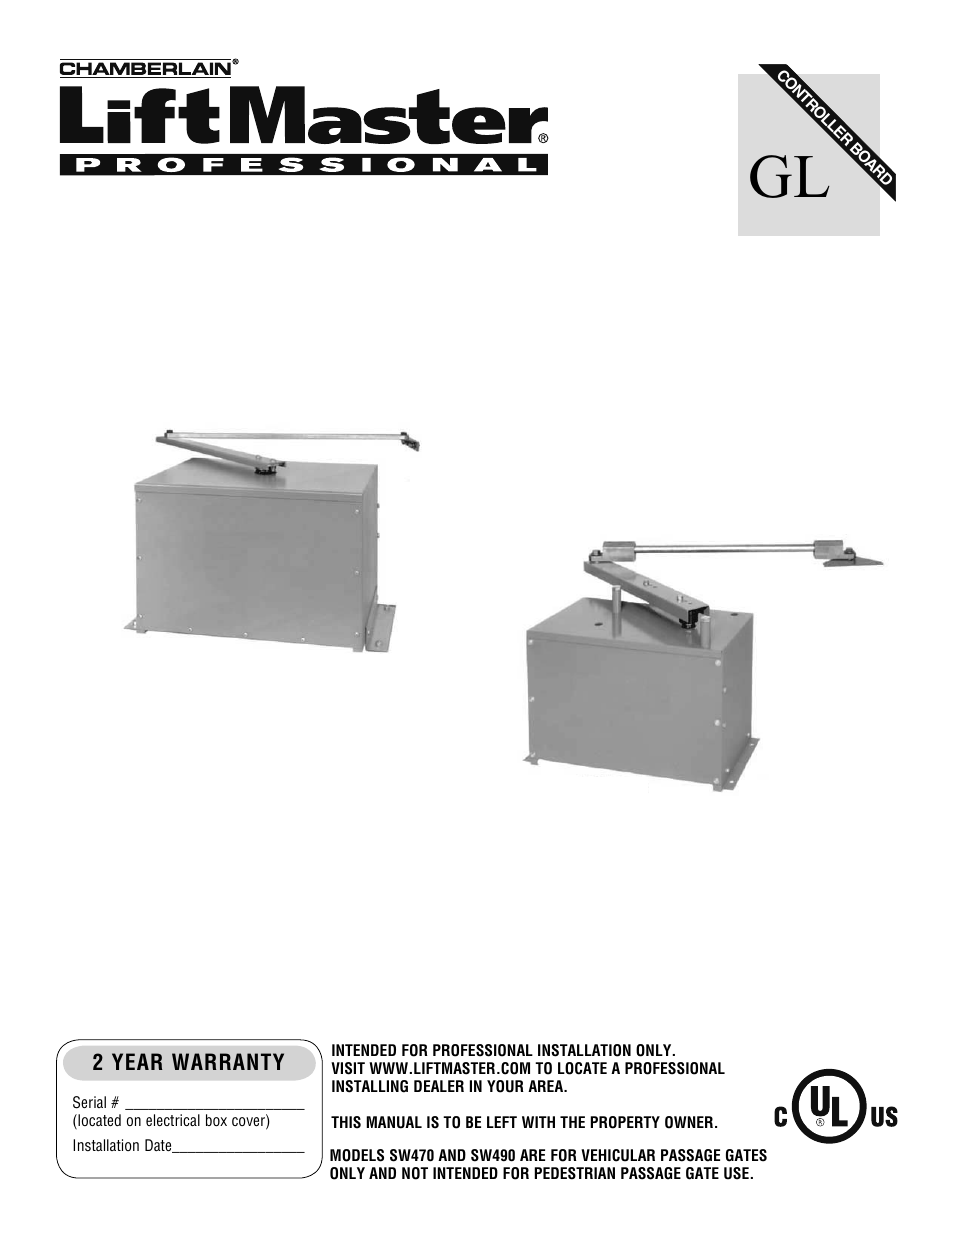 Installation With Chamberlain Liftmaster Professional Manual Guide